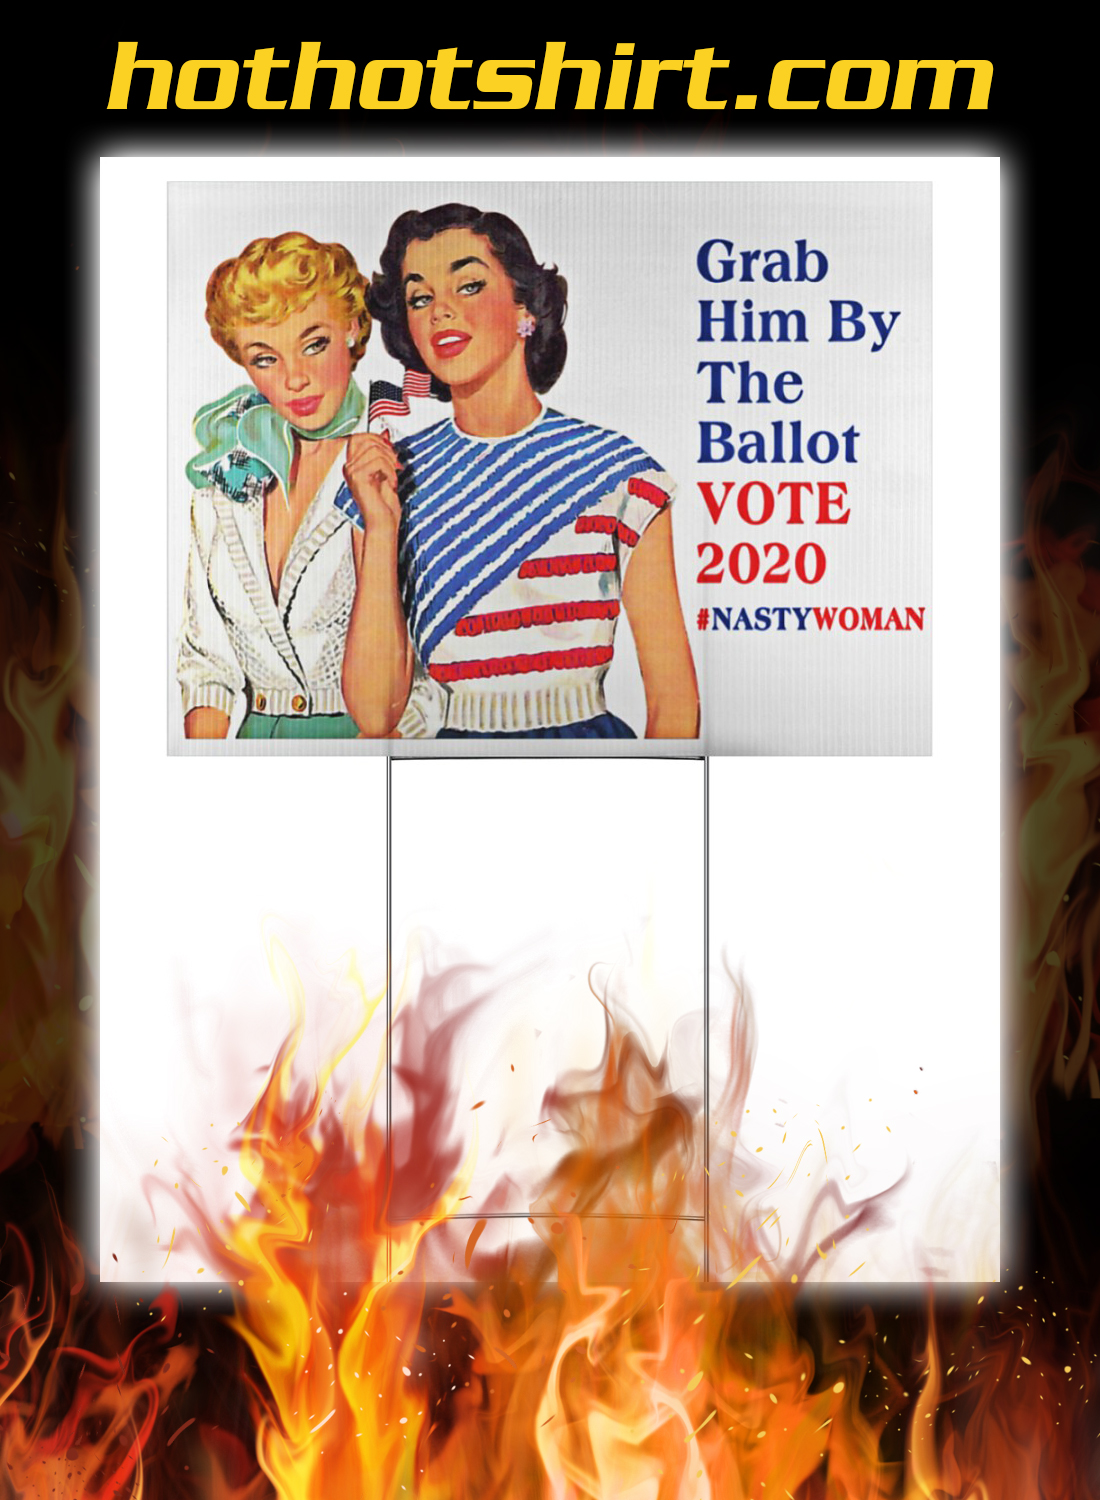 Women grab him by the ballot vote 2020 nasty woman yard signs 1